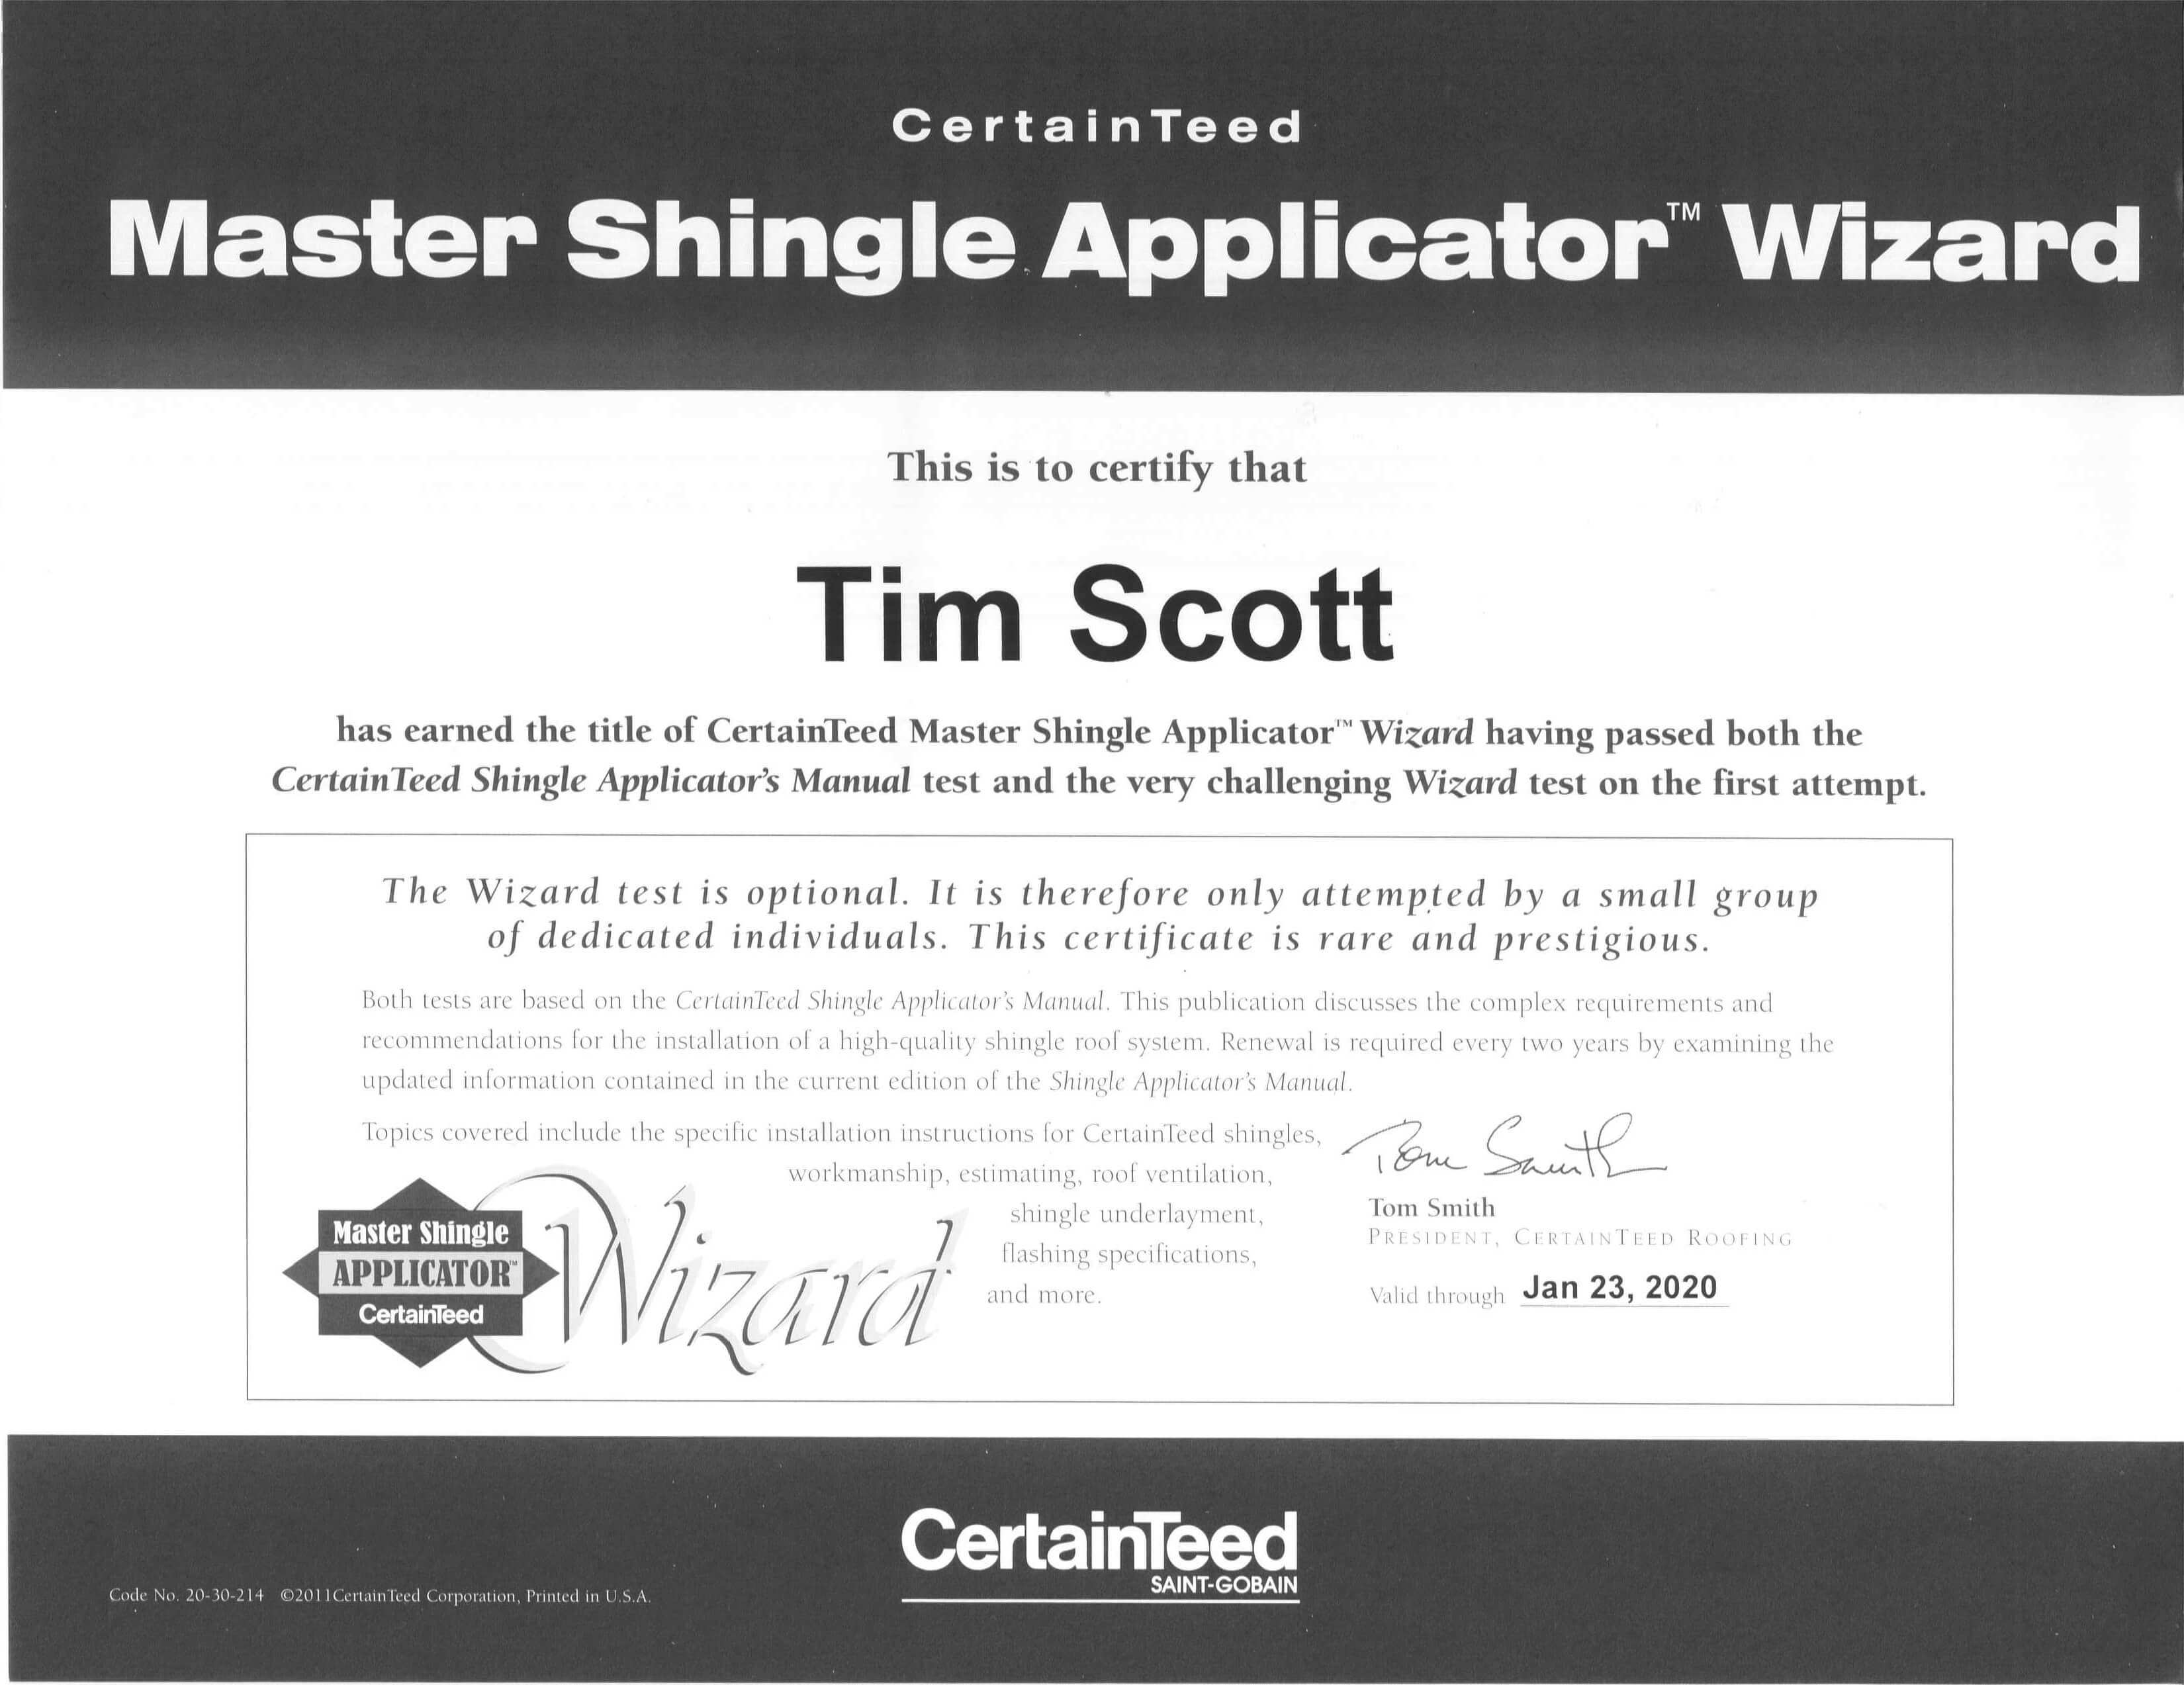 CertainTeed Master Shingle Applicator Wizard Certification